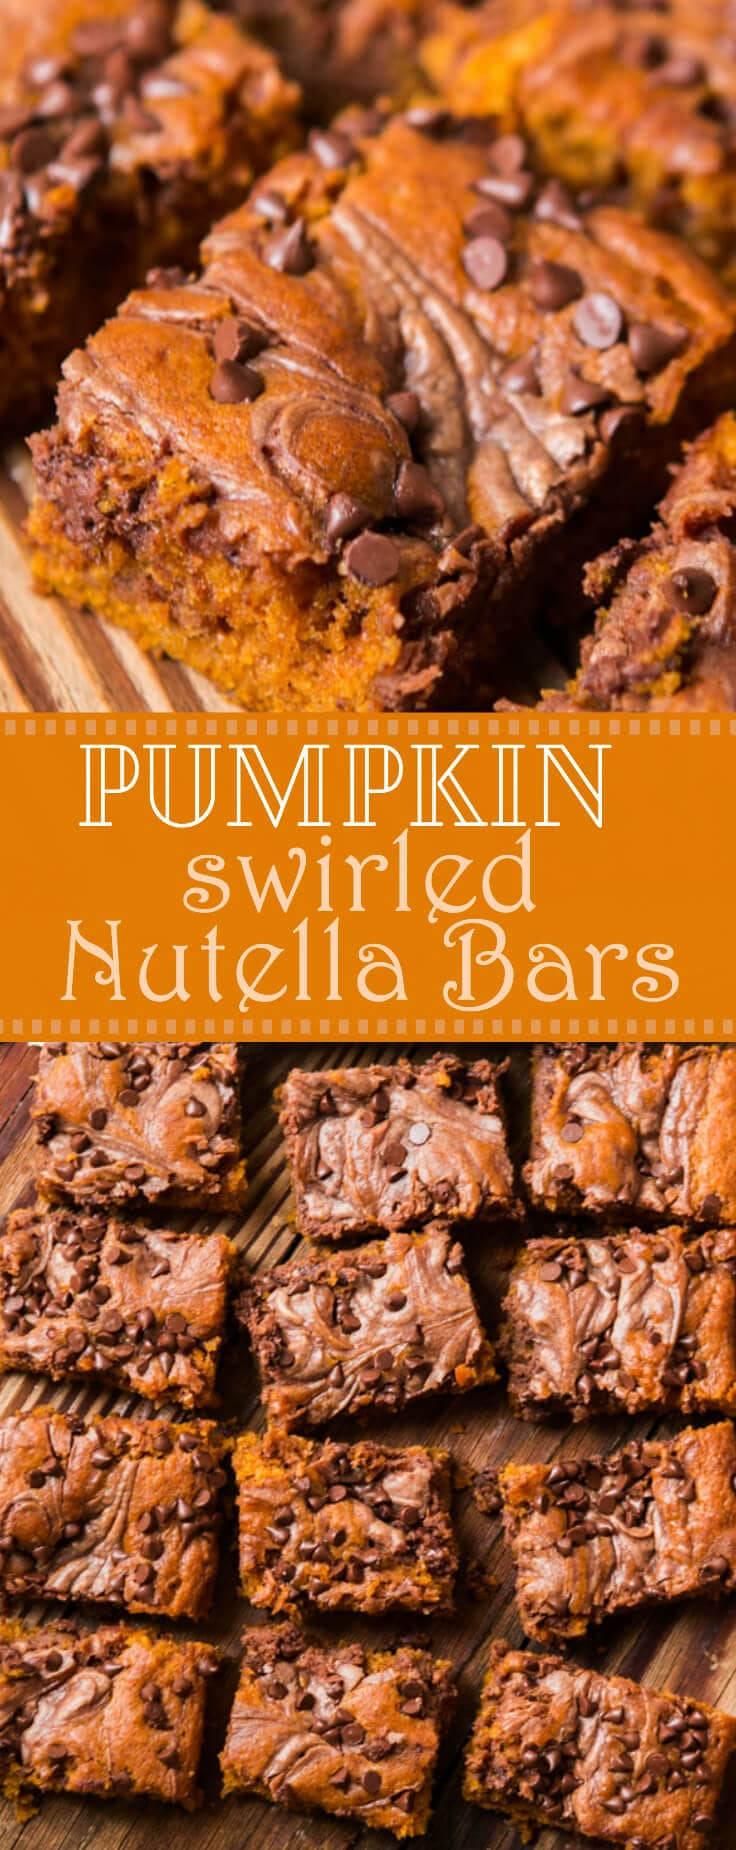 Well this is it, the only pumpkin recipe you need for the entire holiday season. I know, I've posted a lot of pumpkin but Nutella Swirled Pumpkin Bars are the winners.